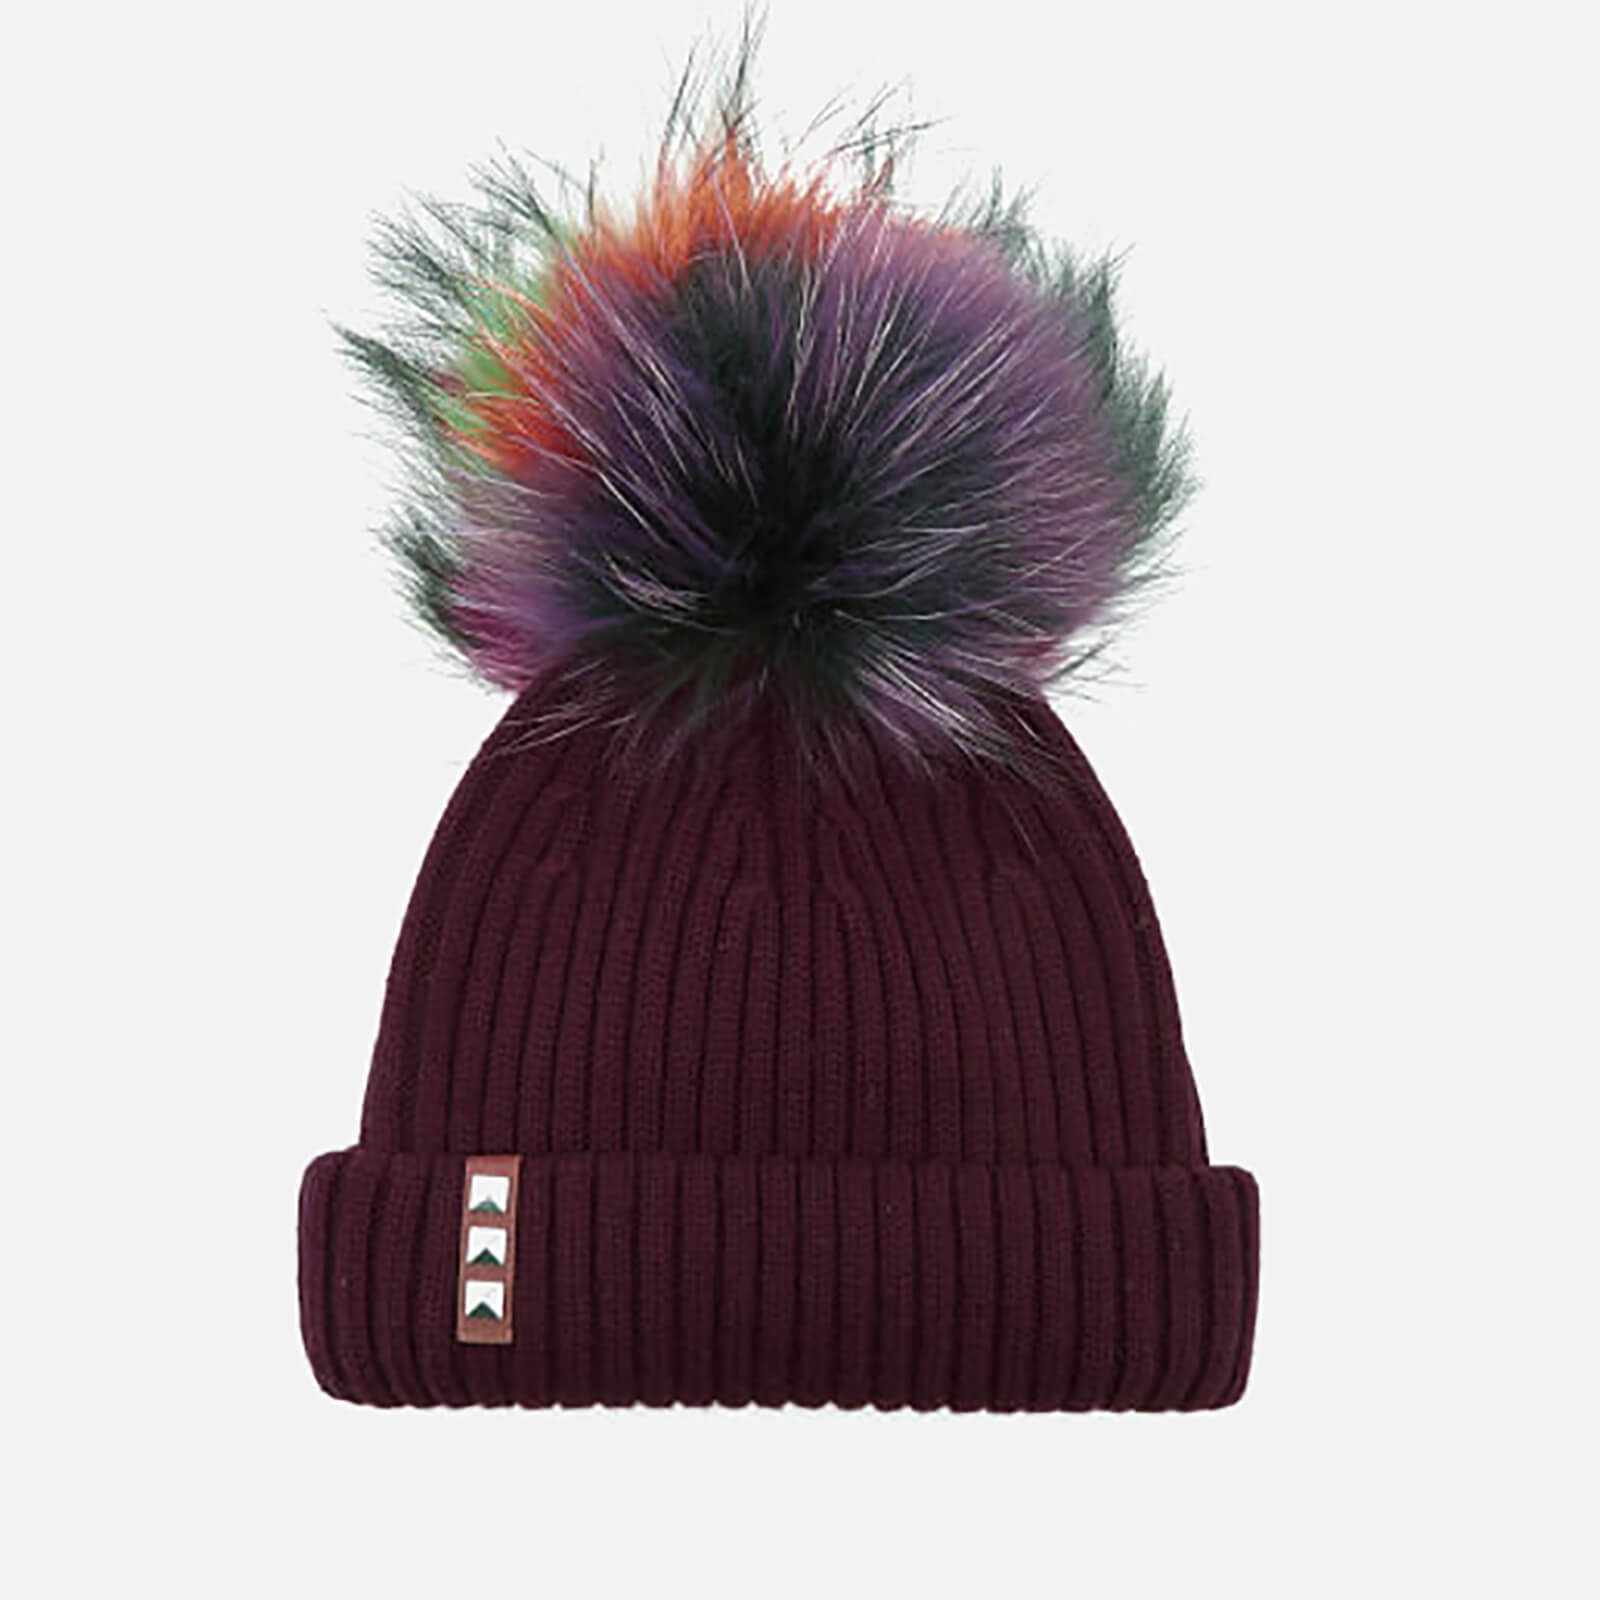 68eae1bdf2a BKLYN Women s Merino Wool Hat with Rainbow Pom Pom - Maroon - Free ...